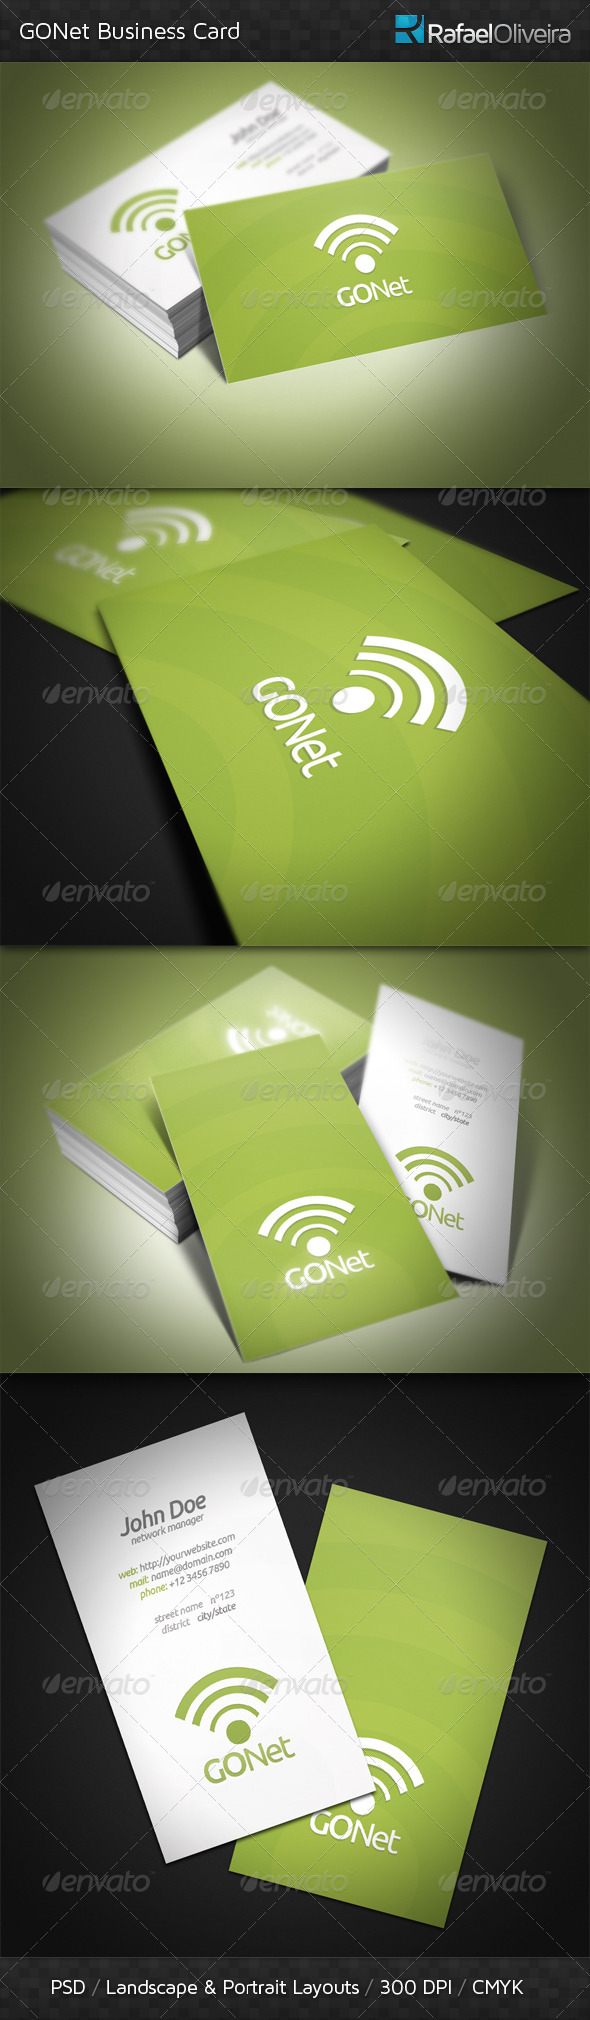 GONet Business Card - Creative Business Cards